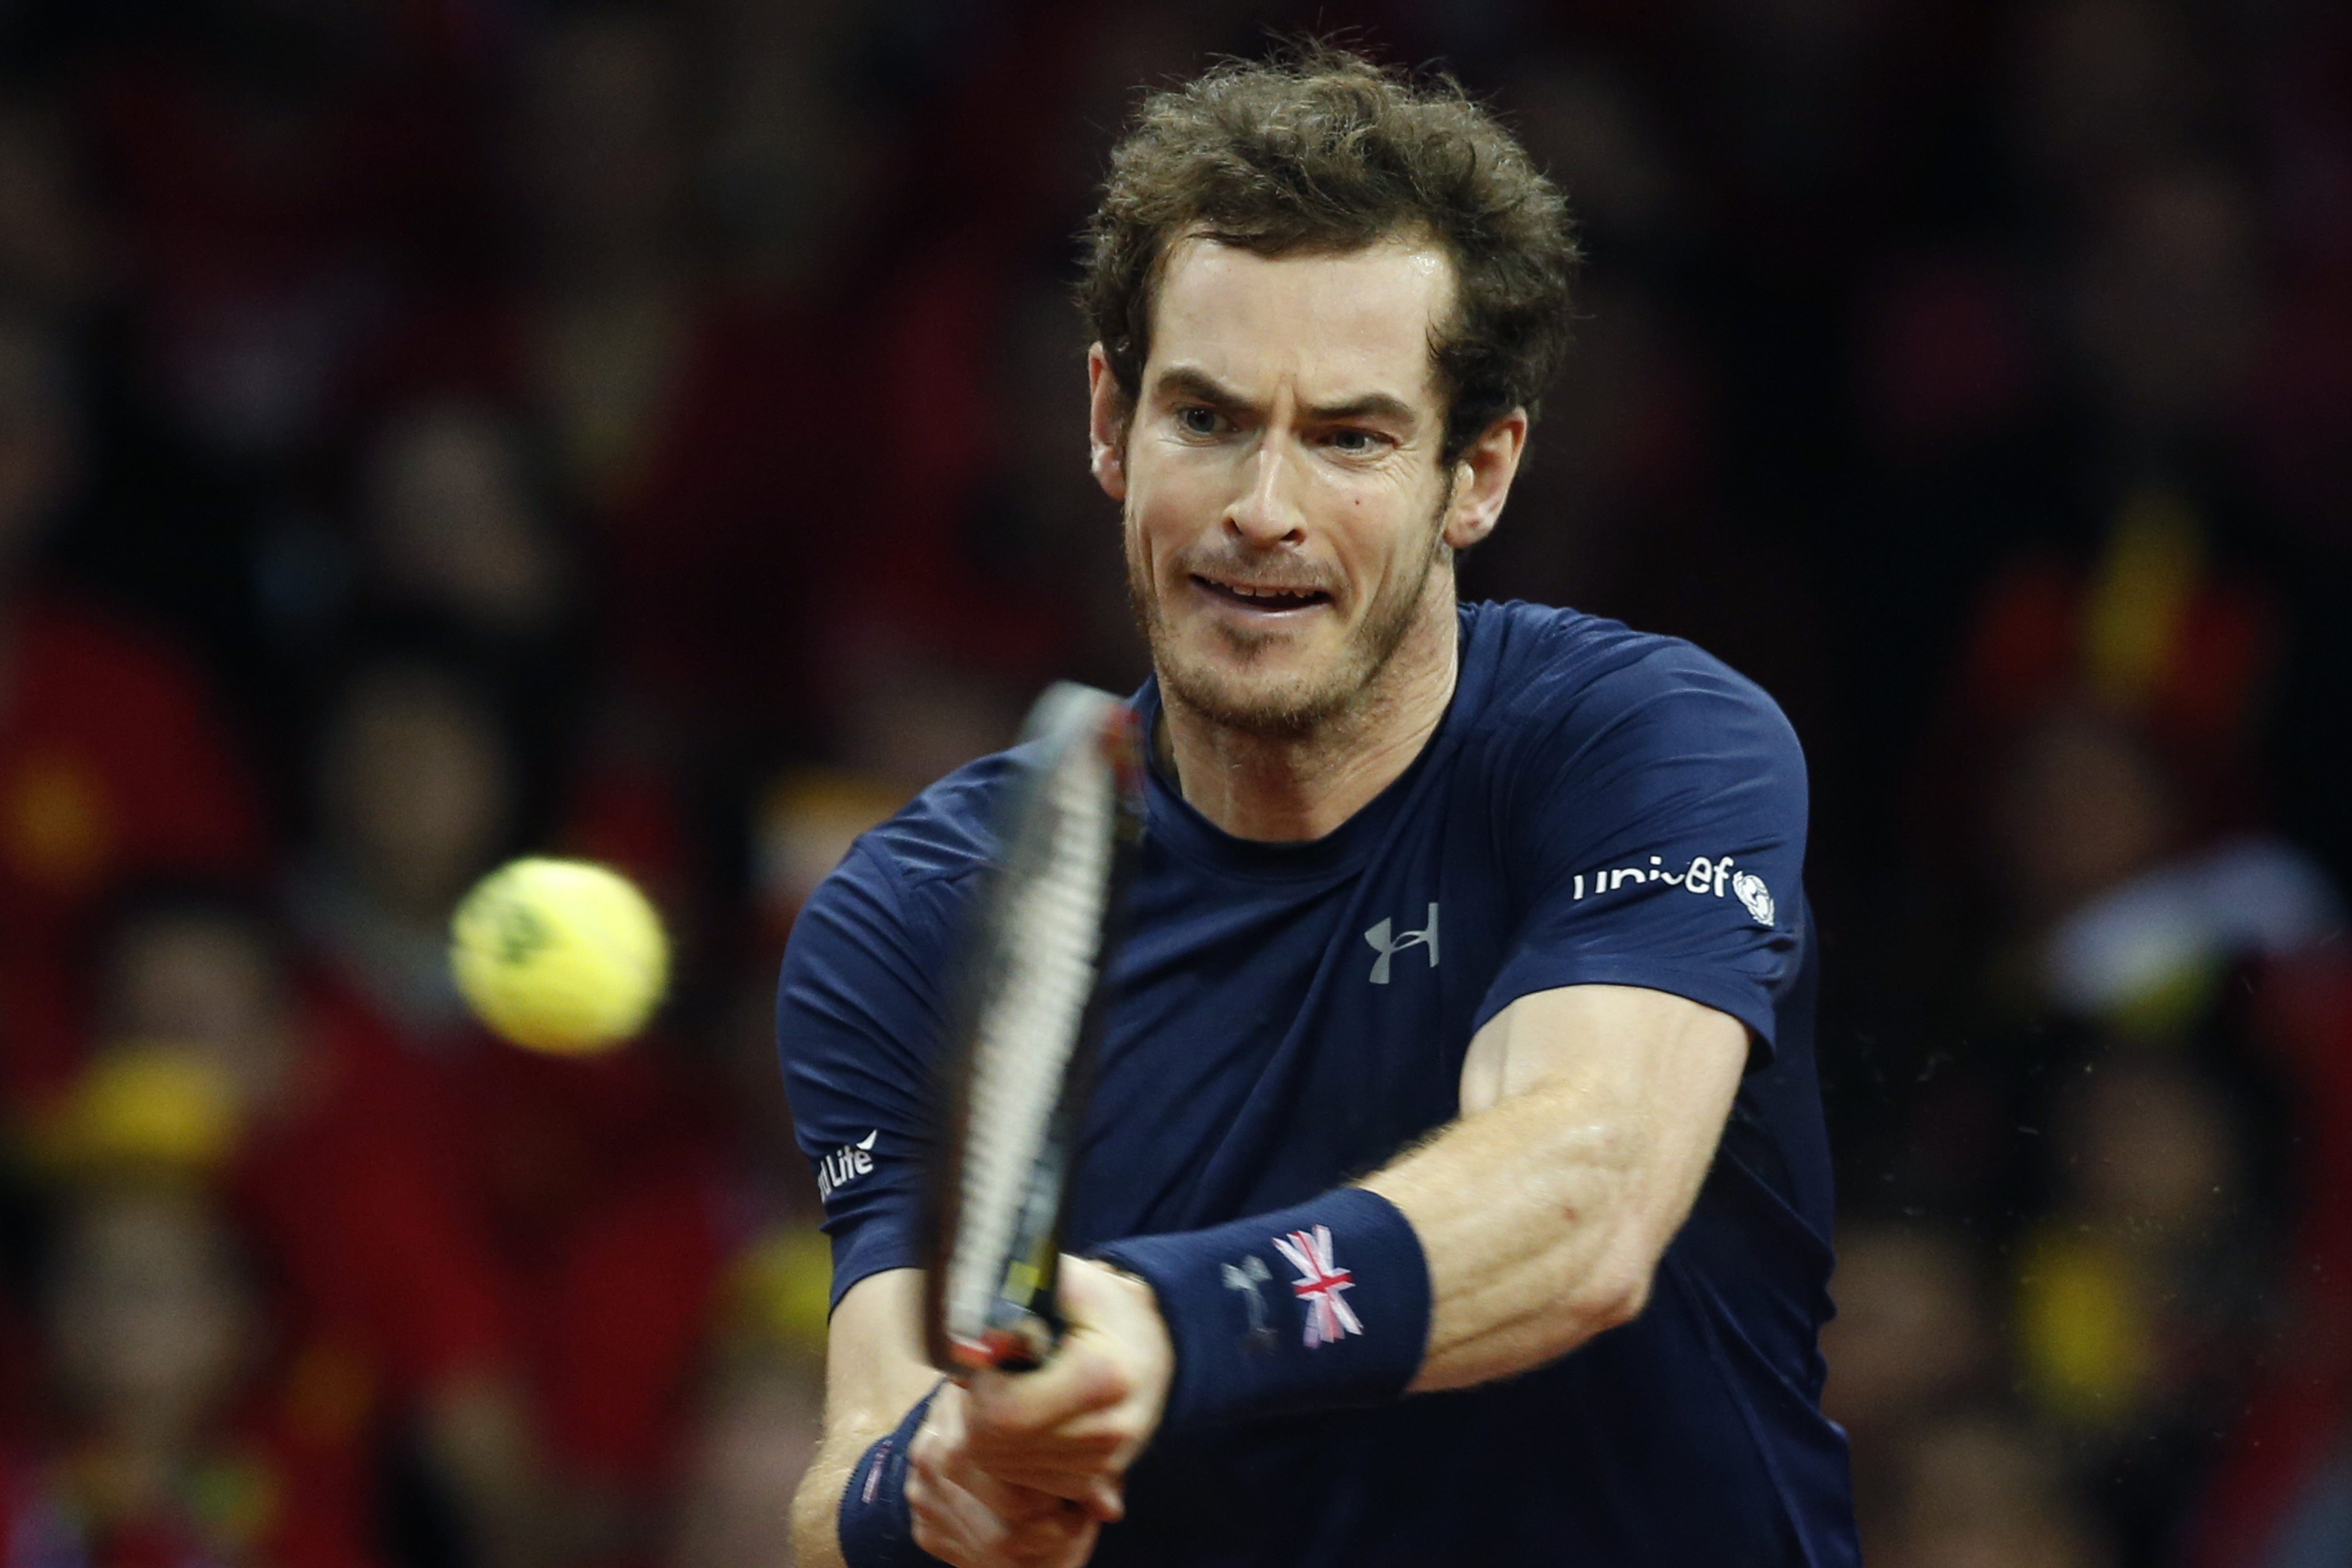 Britain's Andy Murray returns against Belgium's David Goffin during their singles Davis Cup final tennis match at the Flanders Expo in Ghent, Belgium, Sunday, Nov. 29, 2015. (AP Photo/Alastair Grant)